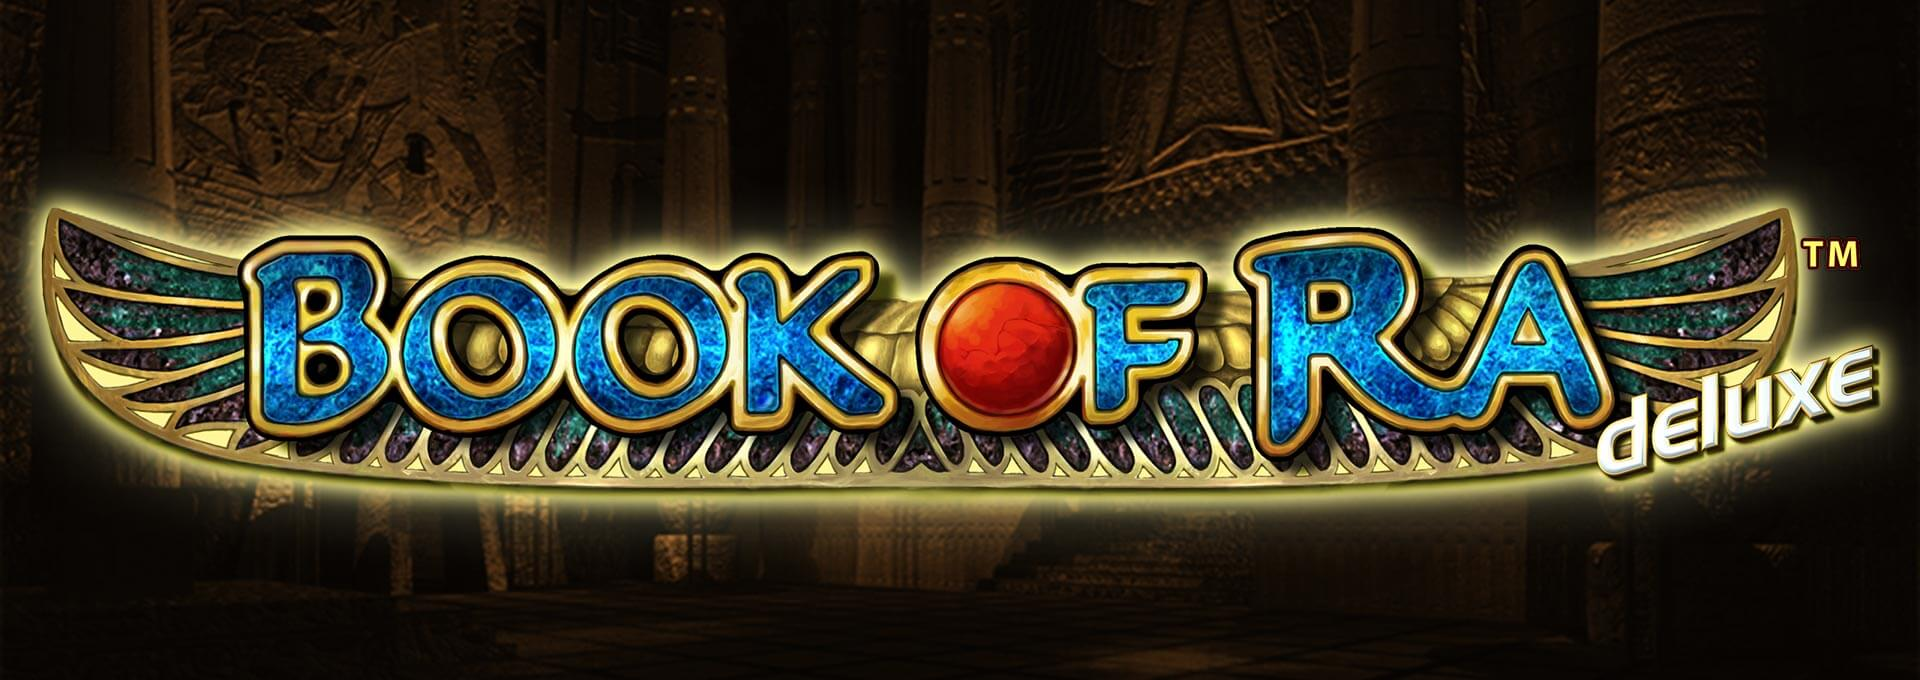 online casino gambling site www.book of ra kostenlos